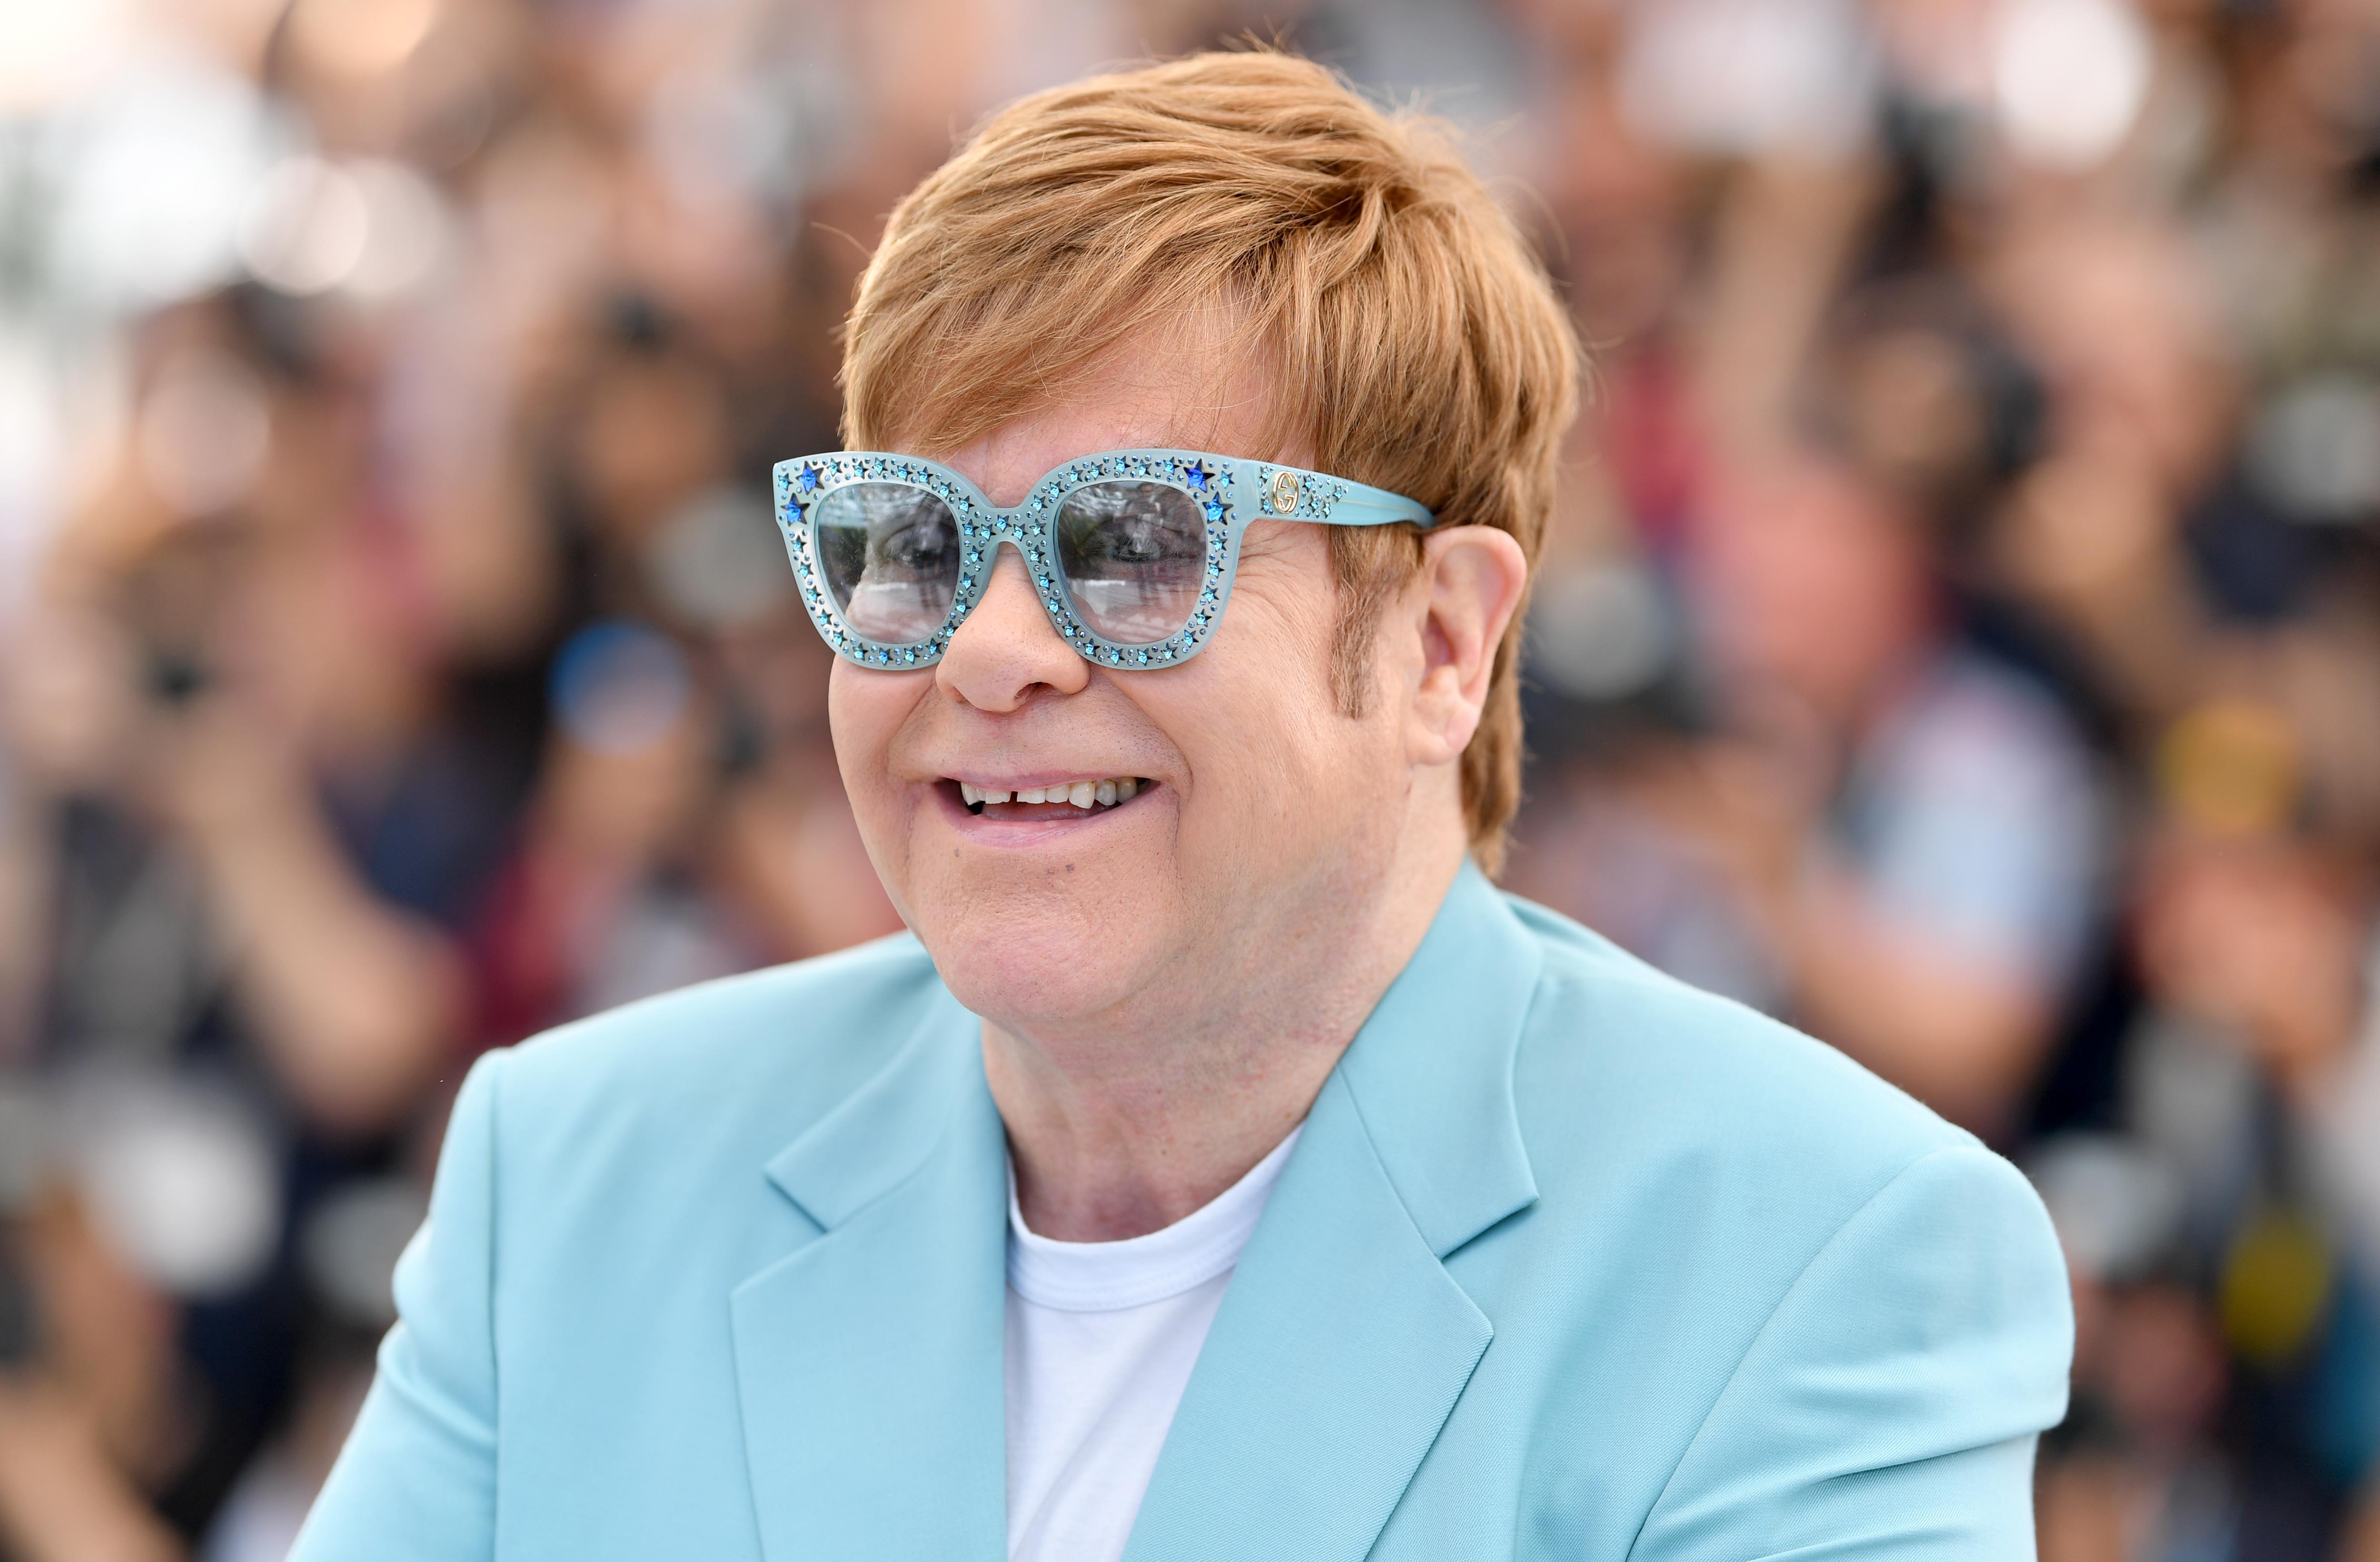 Image Source: Getty Images| A photo of Elton John